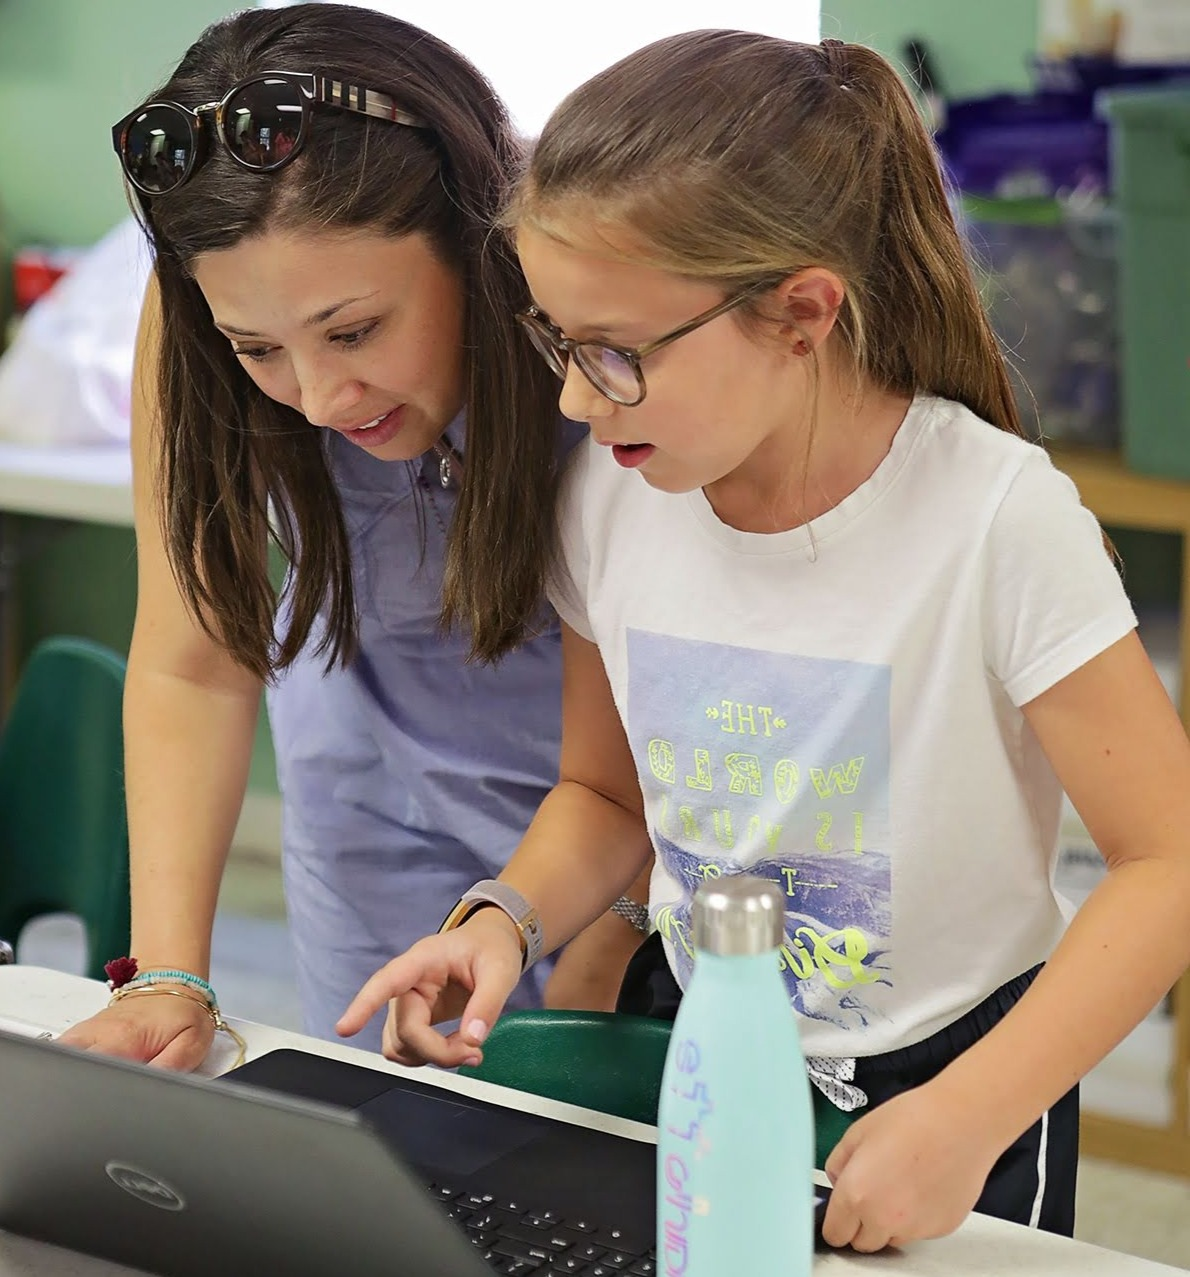 Instructor and young girl problem solving on a laptop computer.